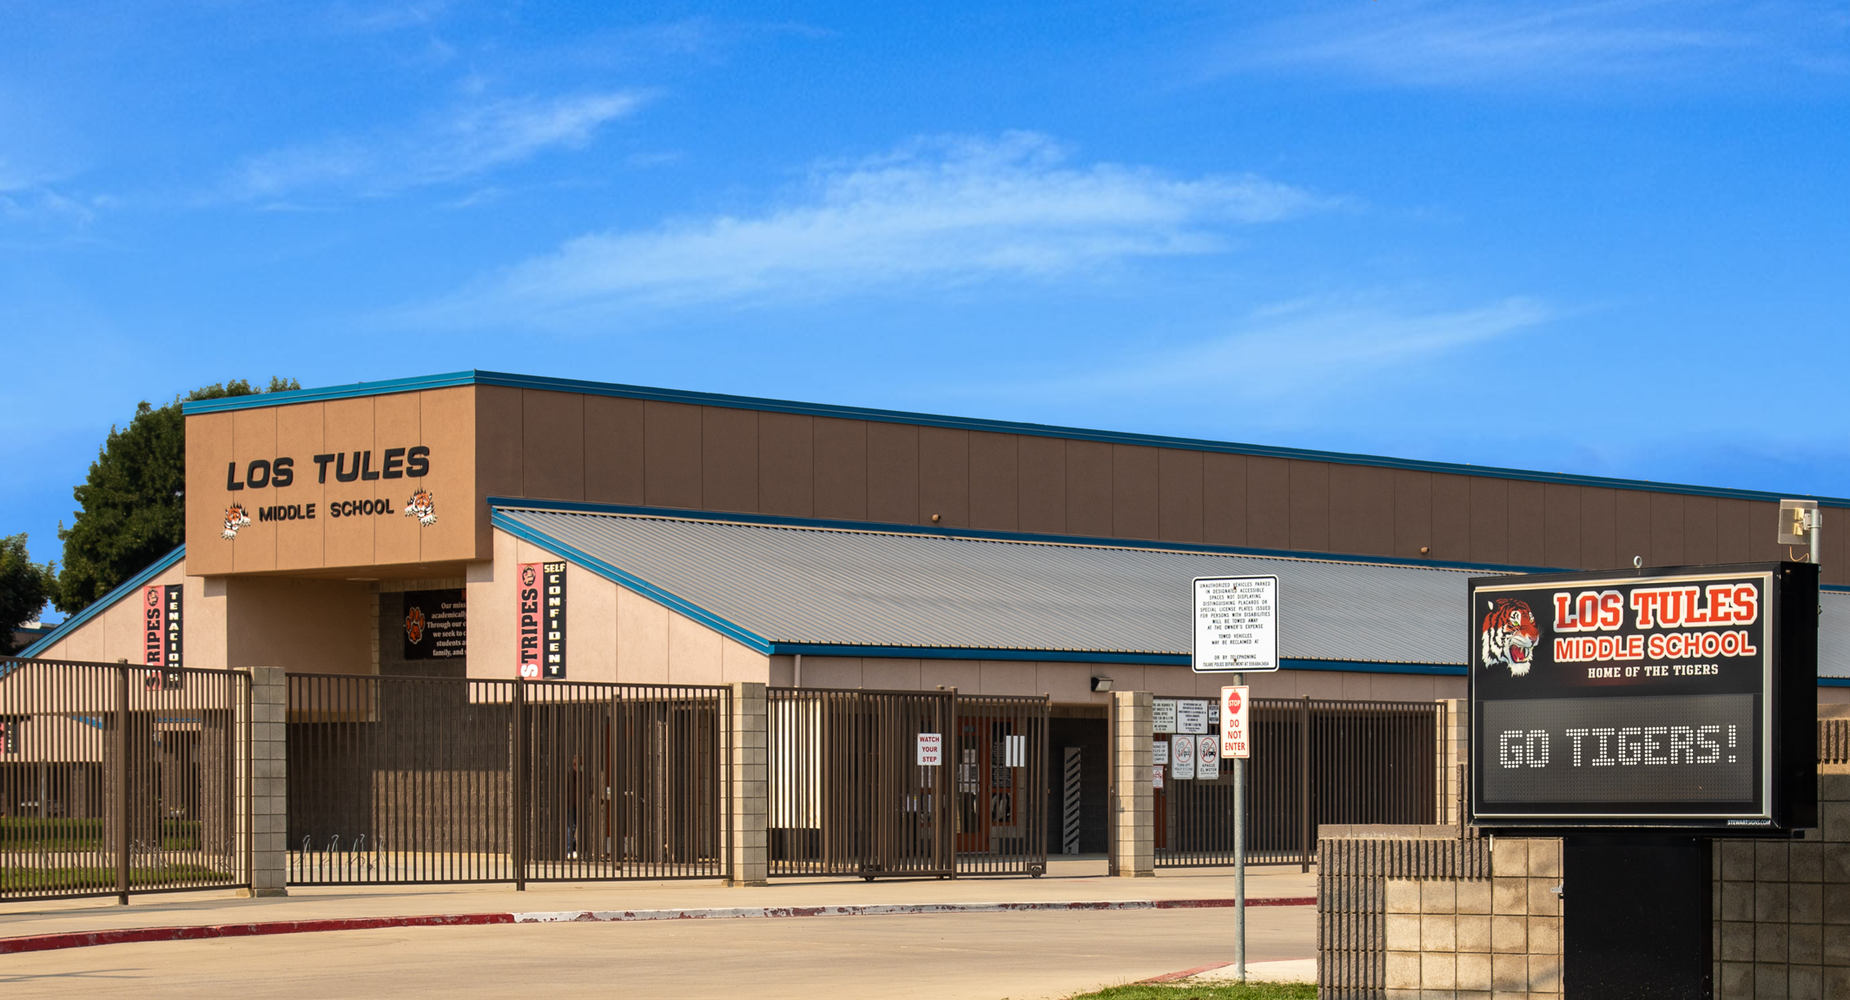 Los Tules Middle School Office Building